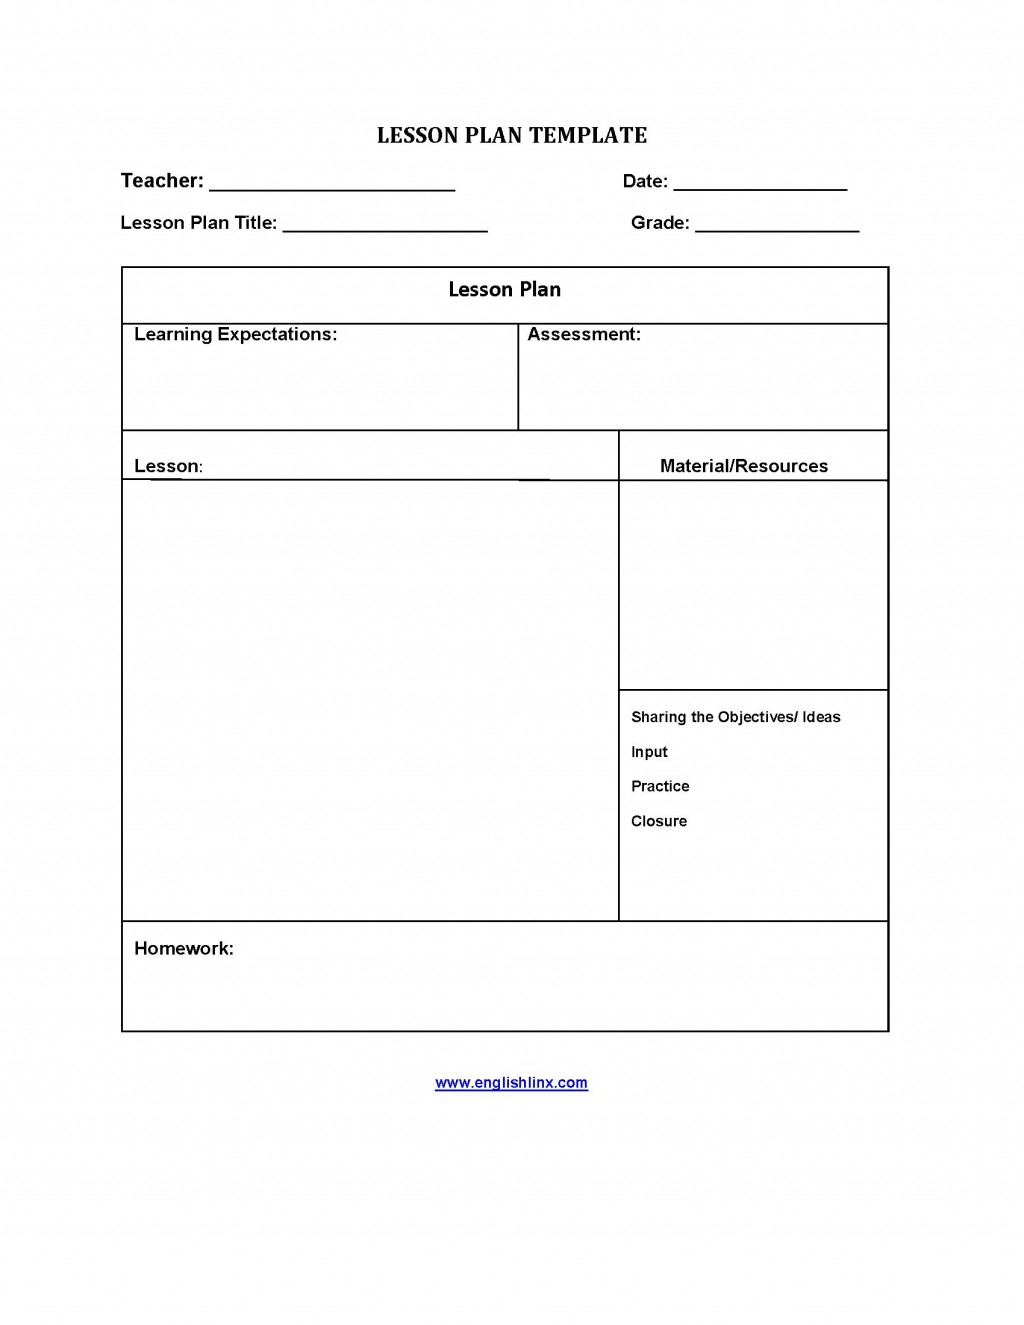 007 Magnificent Physical Education Lesson Plan Template Inspiration  Templates Free Elementary CortlandLarge